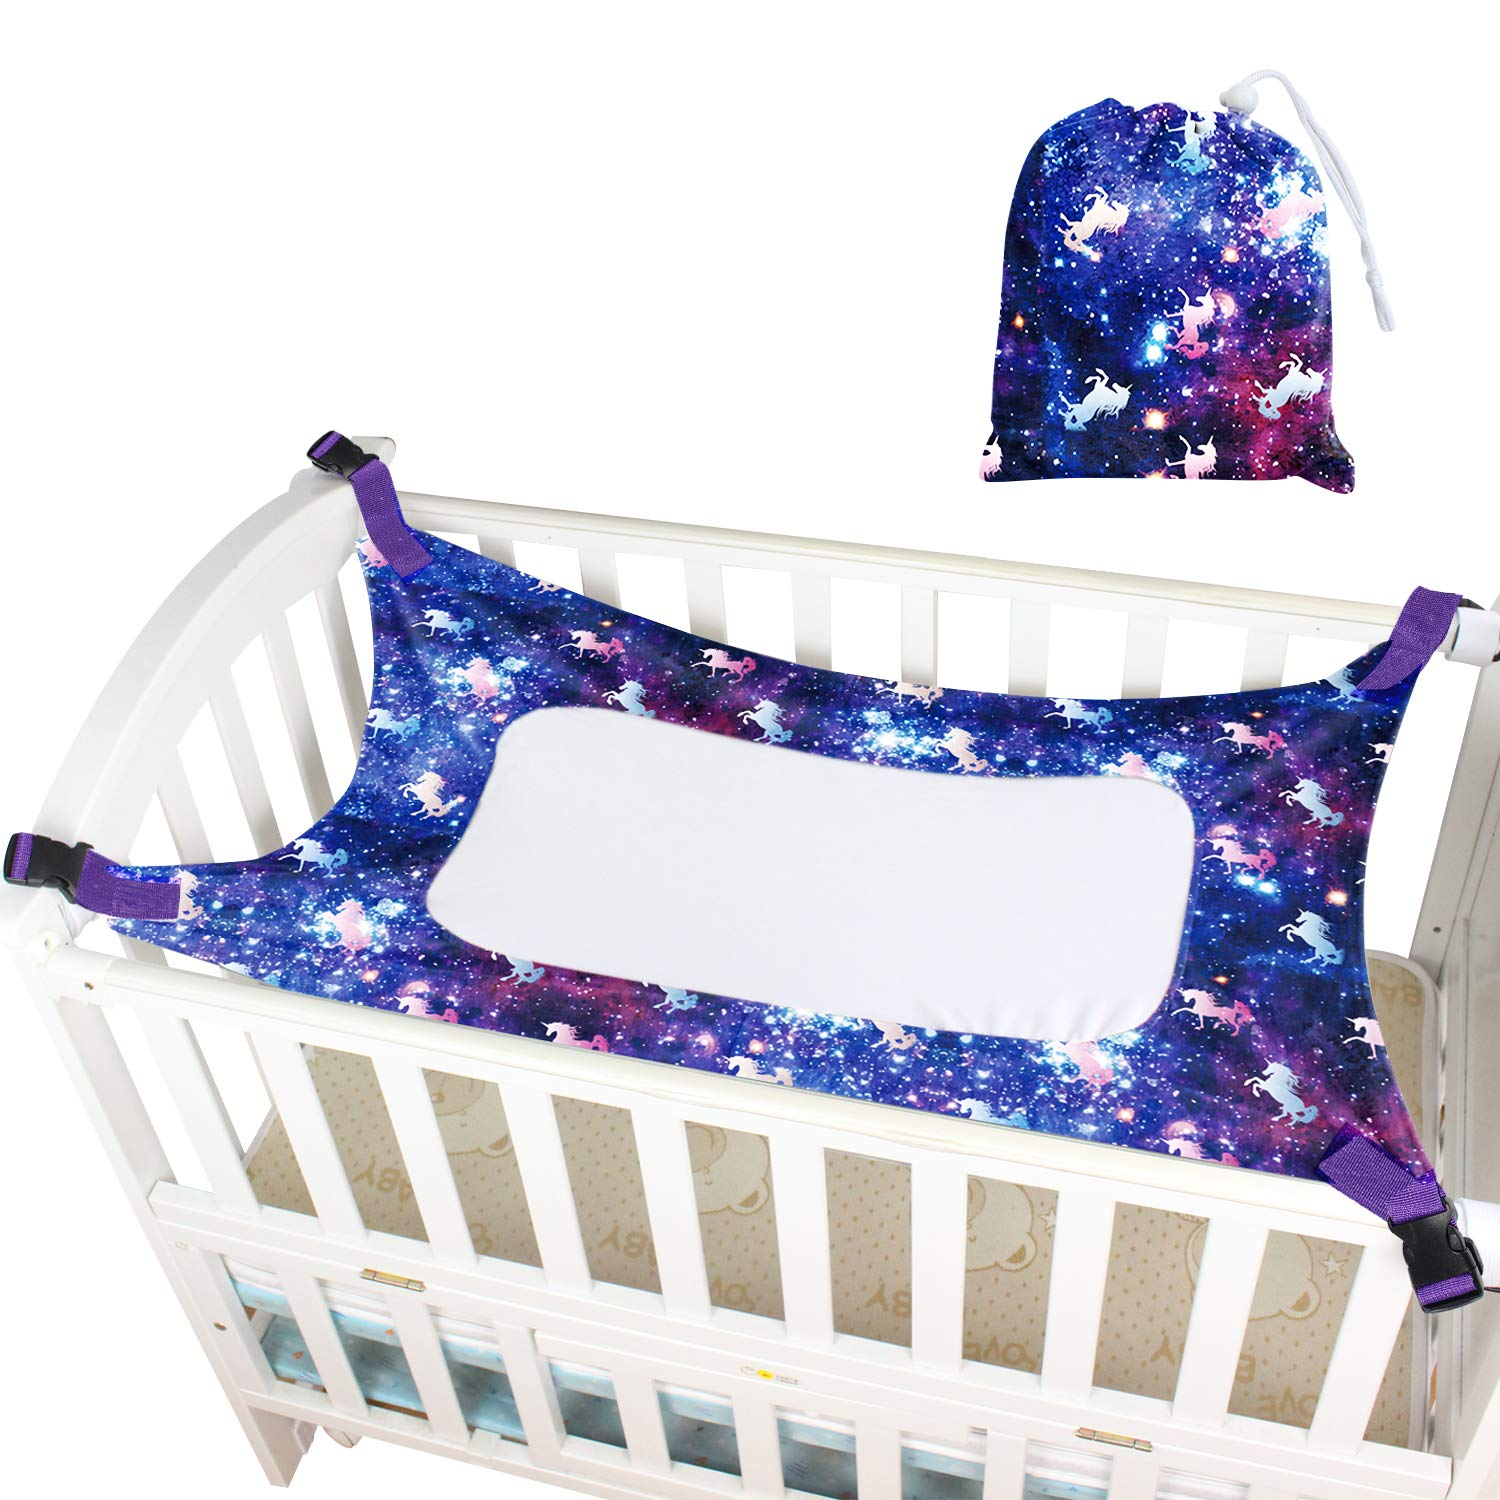 Sylfairy Baby Hammock for Crib, Mimics Womb, Breathable Supportive Mesh Newborn Bassinet Safe Buckle Hammocks Bed with Portable Gift Bag for Newborn Baby Shower Gifts Bassinet Hammock(Galaxy)